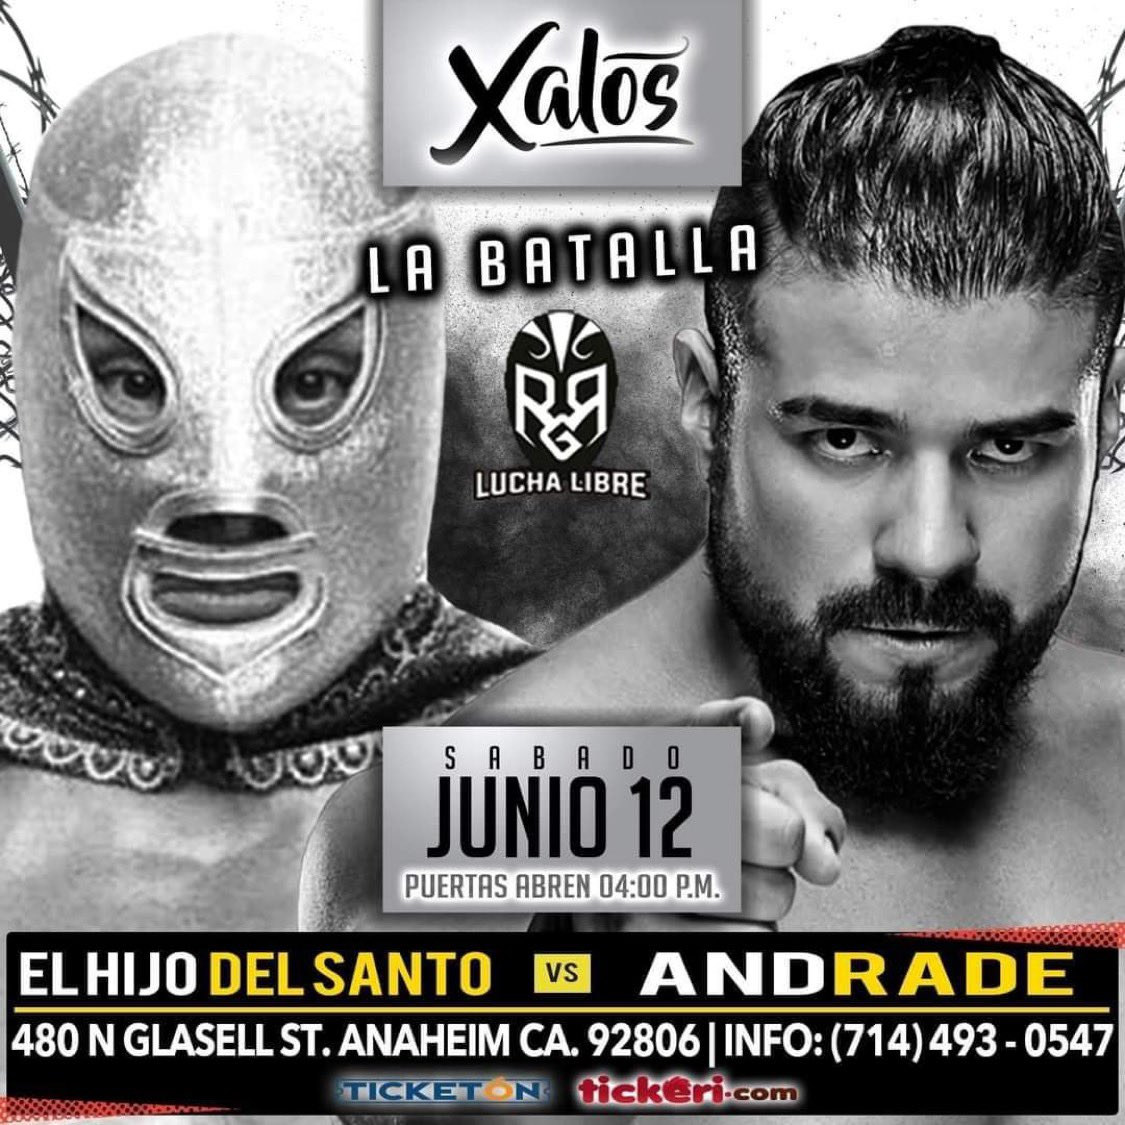 Andrade To Wrestle El Hijo Del Santo In First Match Since Leaving WWE